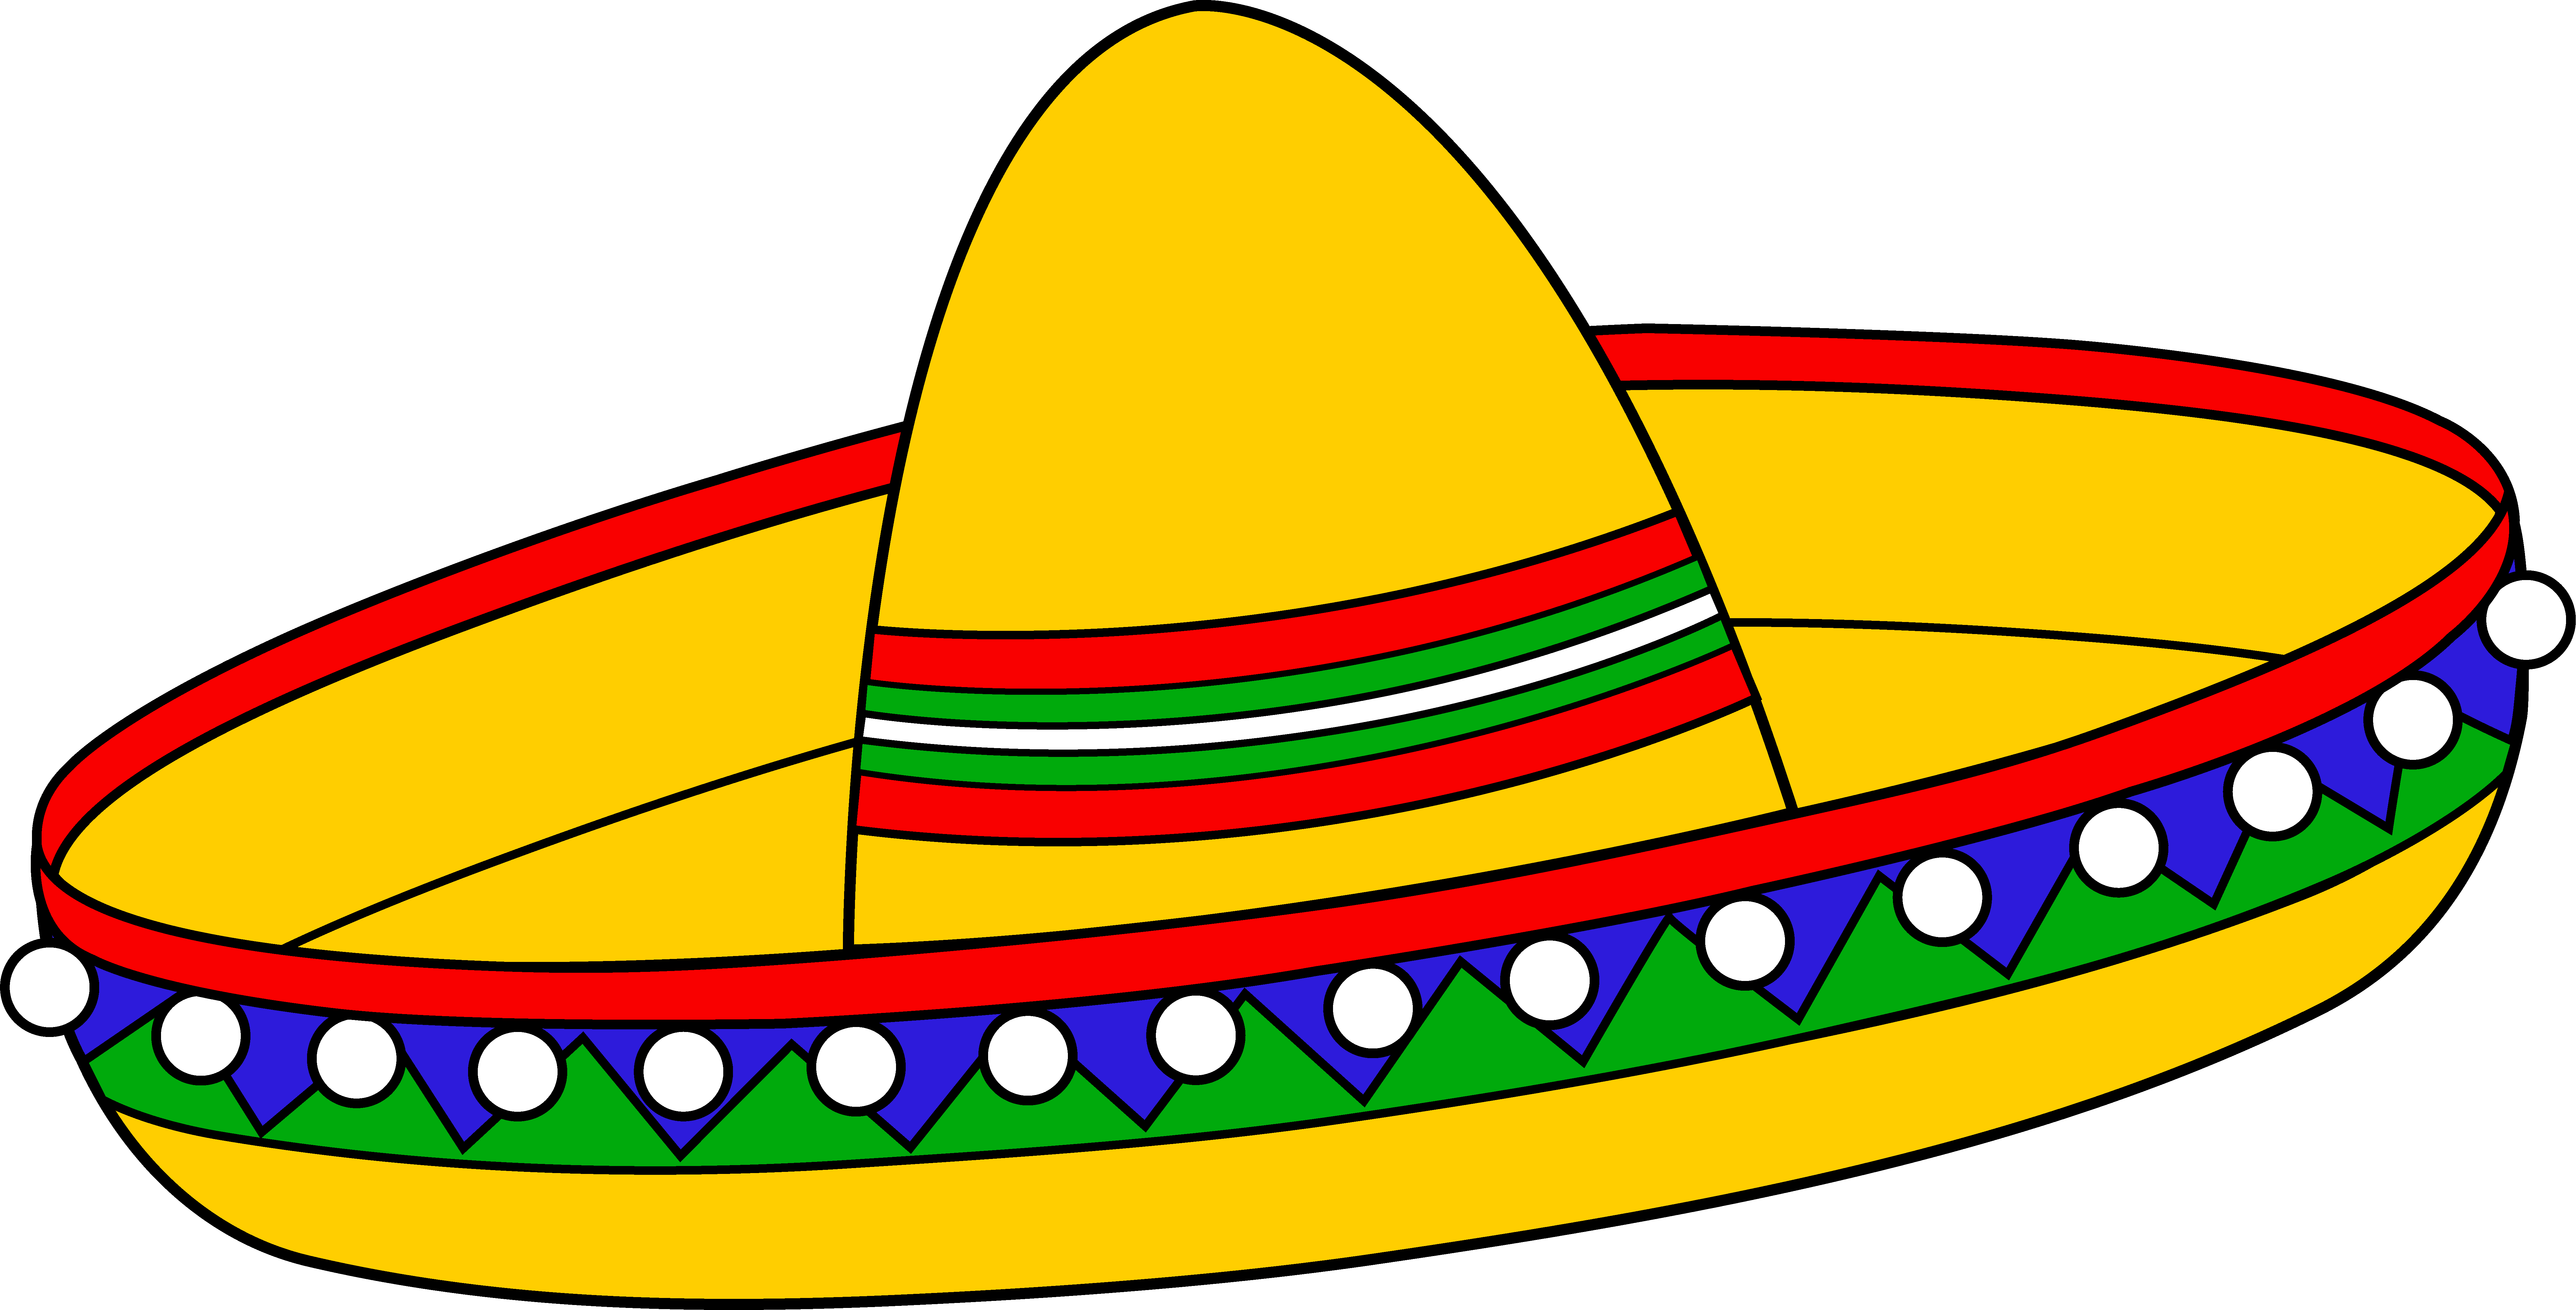 colorful mexican sombrero hat free clip art templates 2 rh pinterest com mexican clip art taco bar mexican clip art free